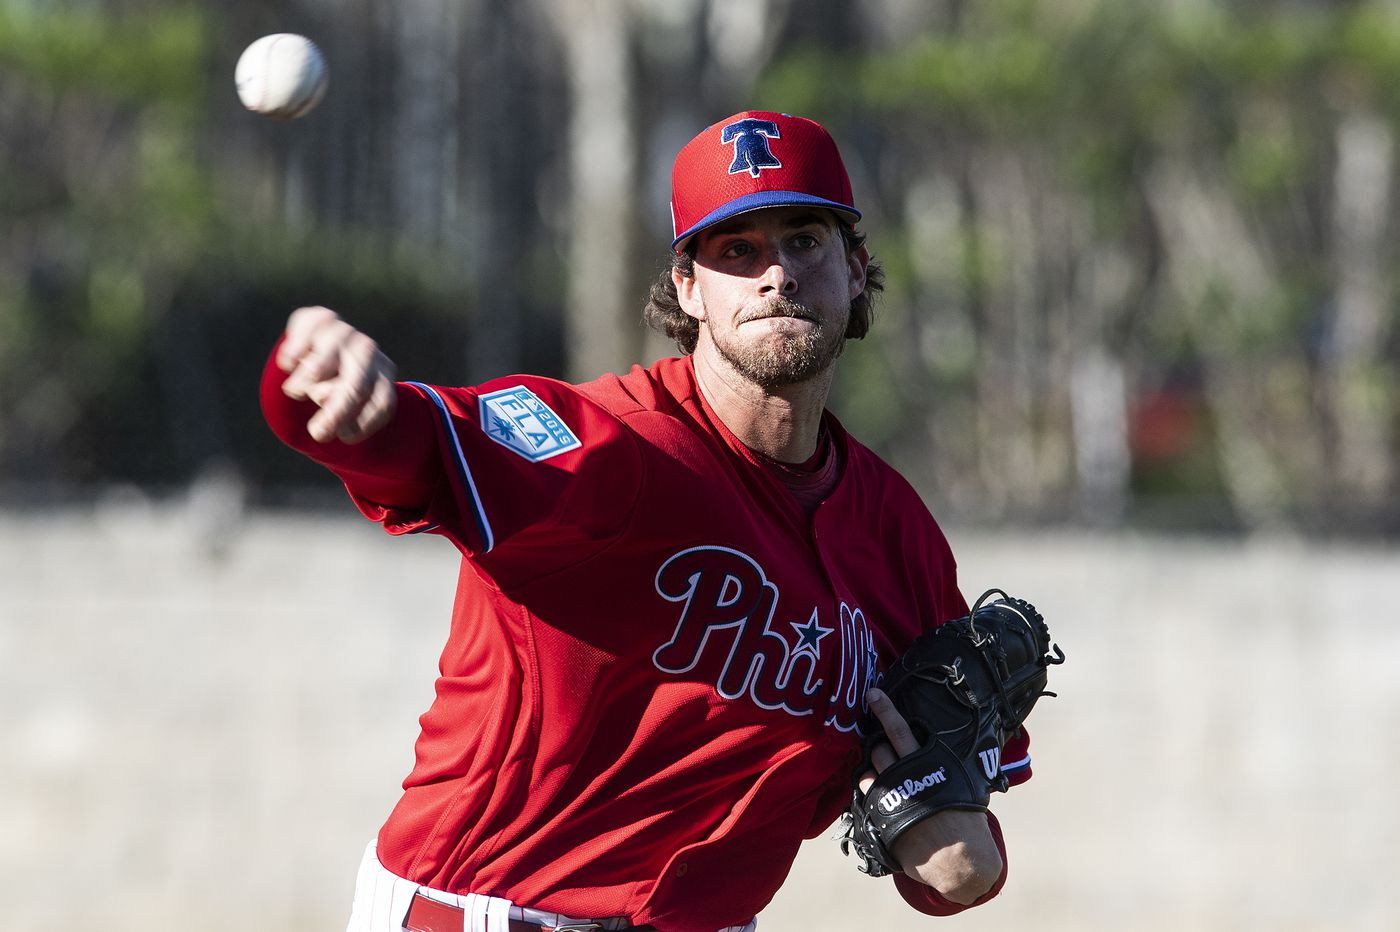 Aaron Nola's contract extension with Phillies could be sign of new MLB free-agency patterns   Scott Lauber